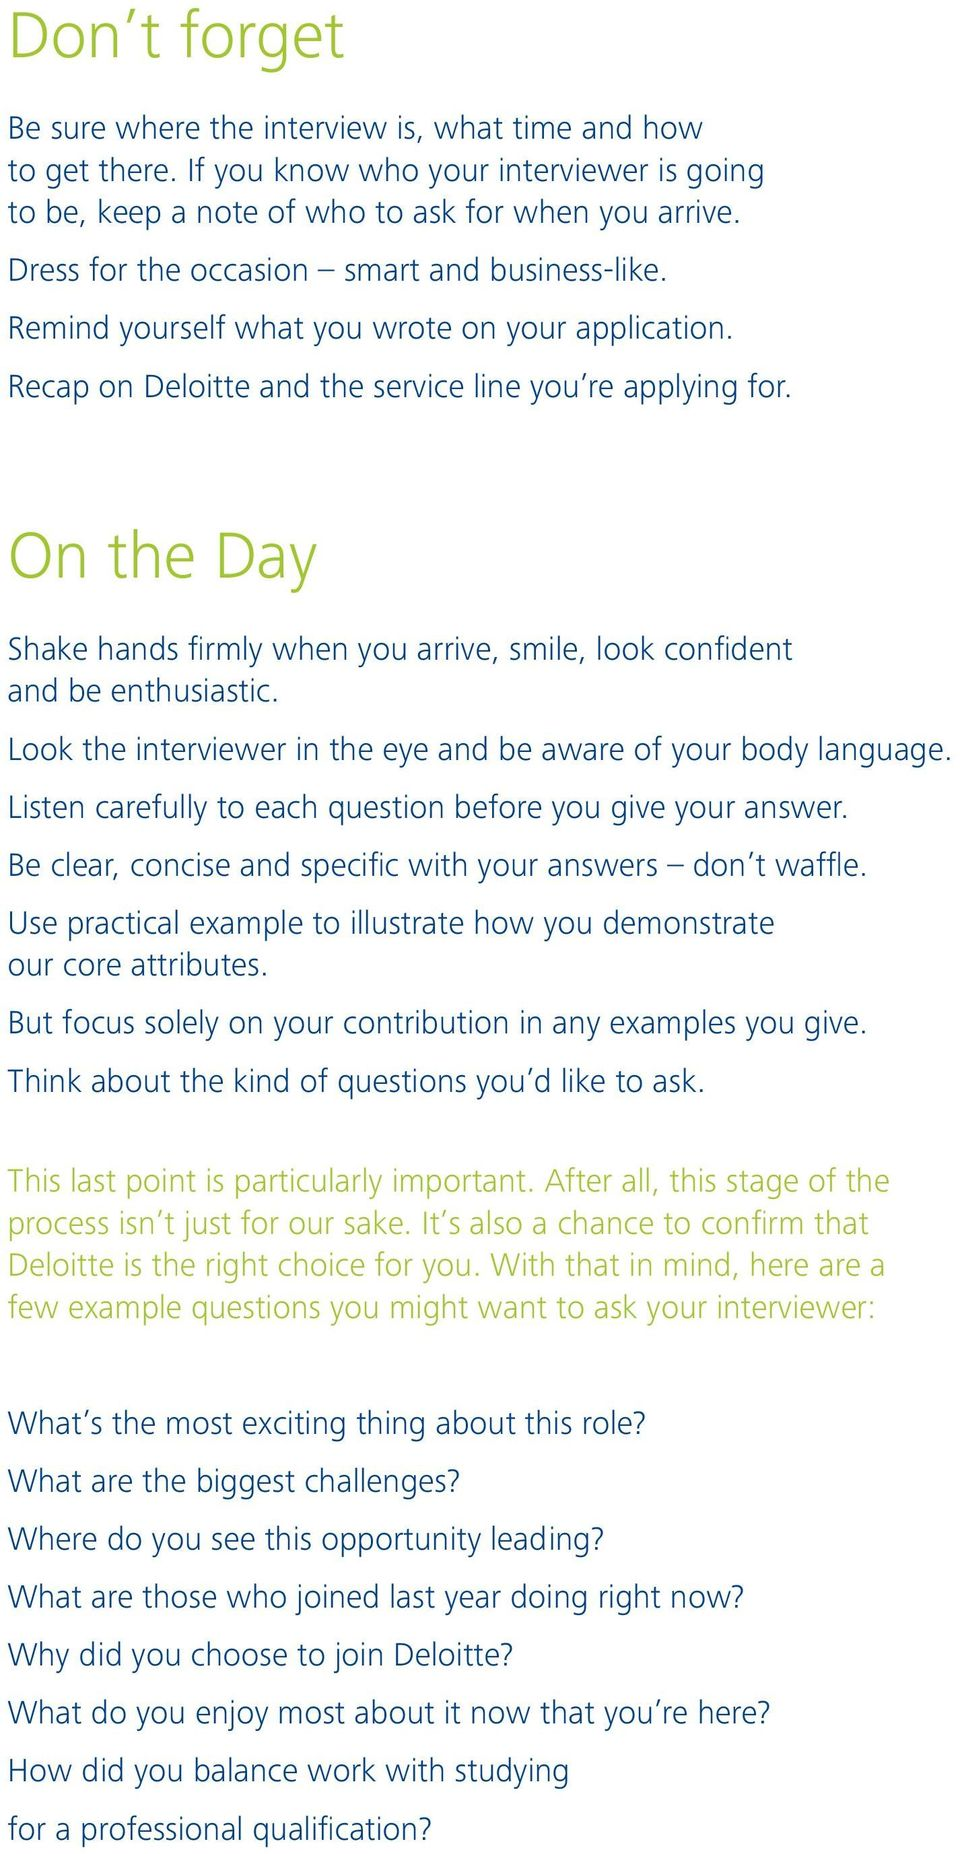 On the Day Shake hands firmly when you arrive, smile, look confident and be enthusiastic. Look the interviewer in the eye and be aware of your body language.